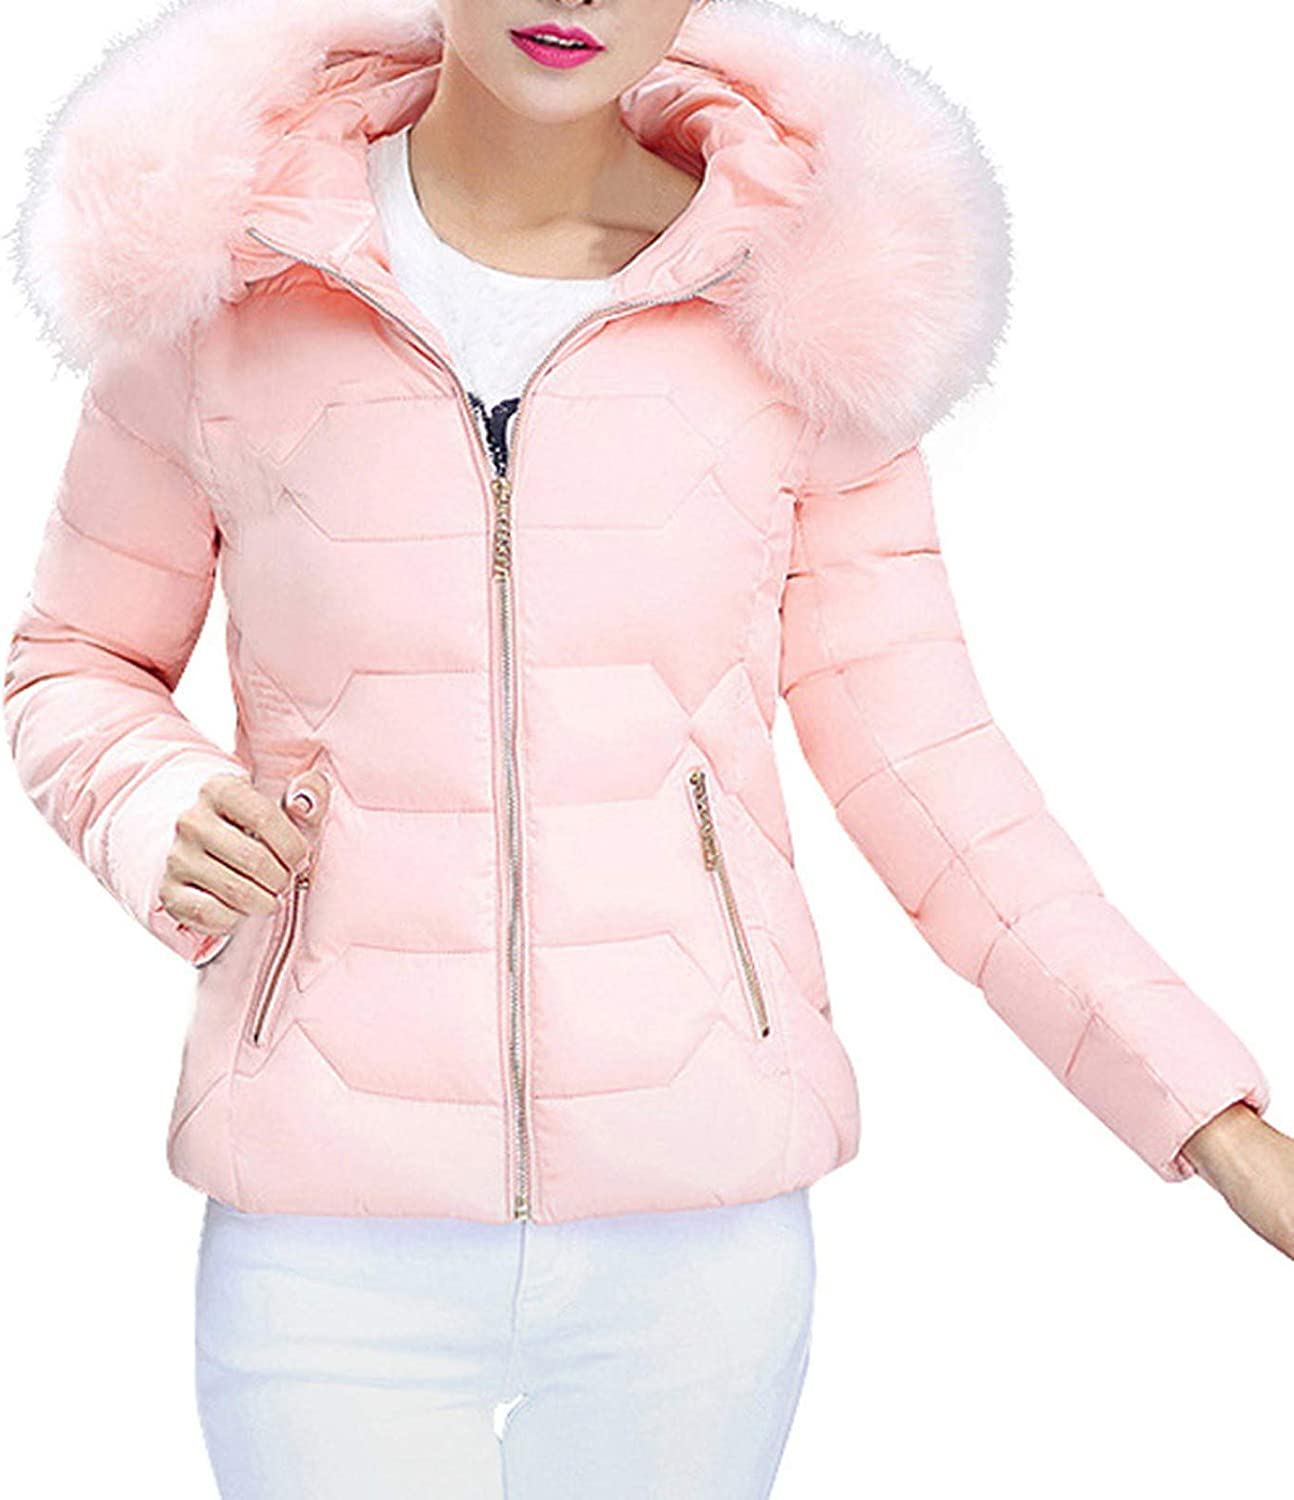 HGWXX7 Womens Coat Casual Faux Fur Hood Puffer Cropped Overcoat Zip Up Long Sleeve Warm Winter Down Jacket with Pockets Pink